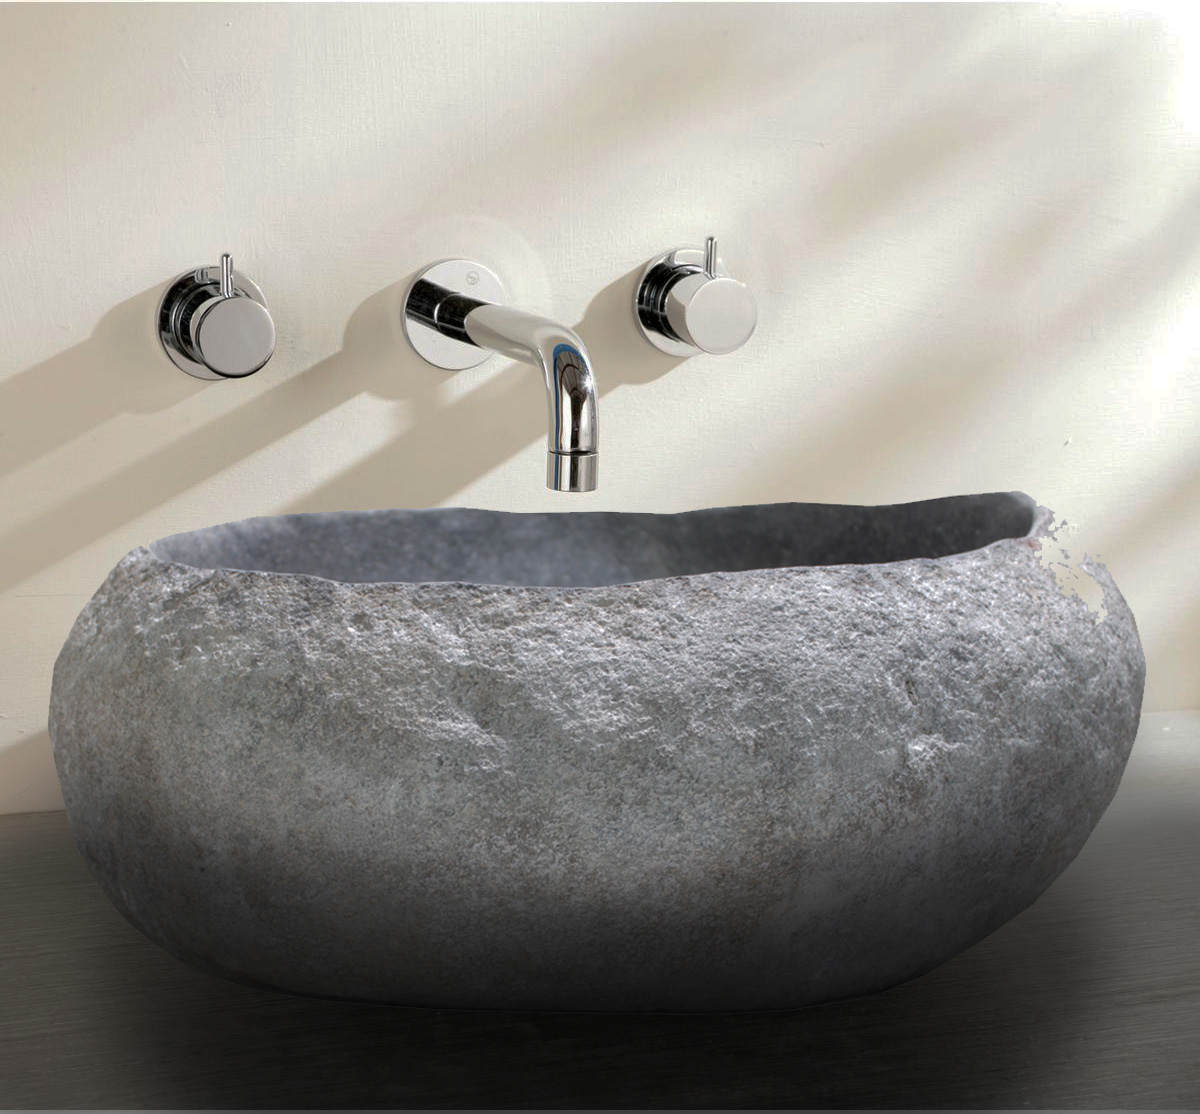 Natural river stone wash basin without edging